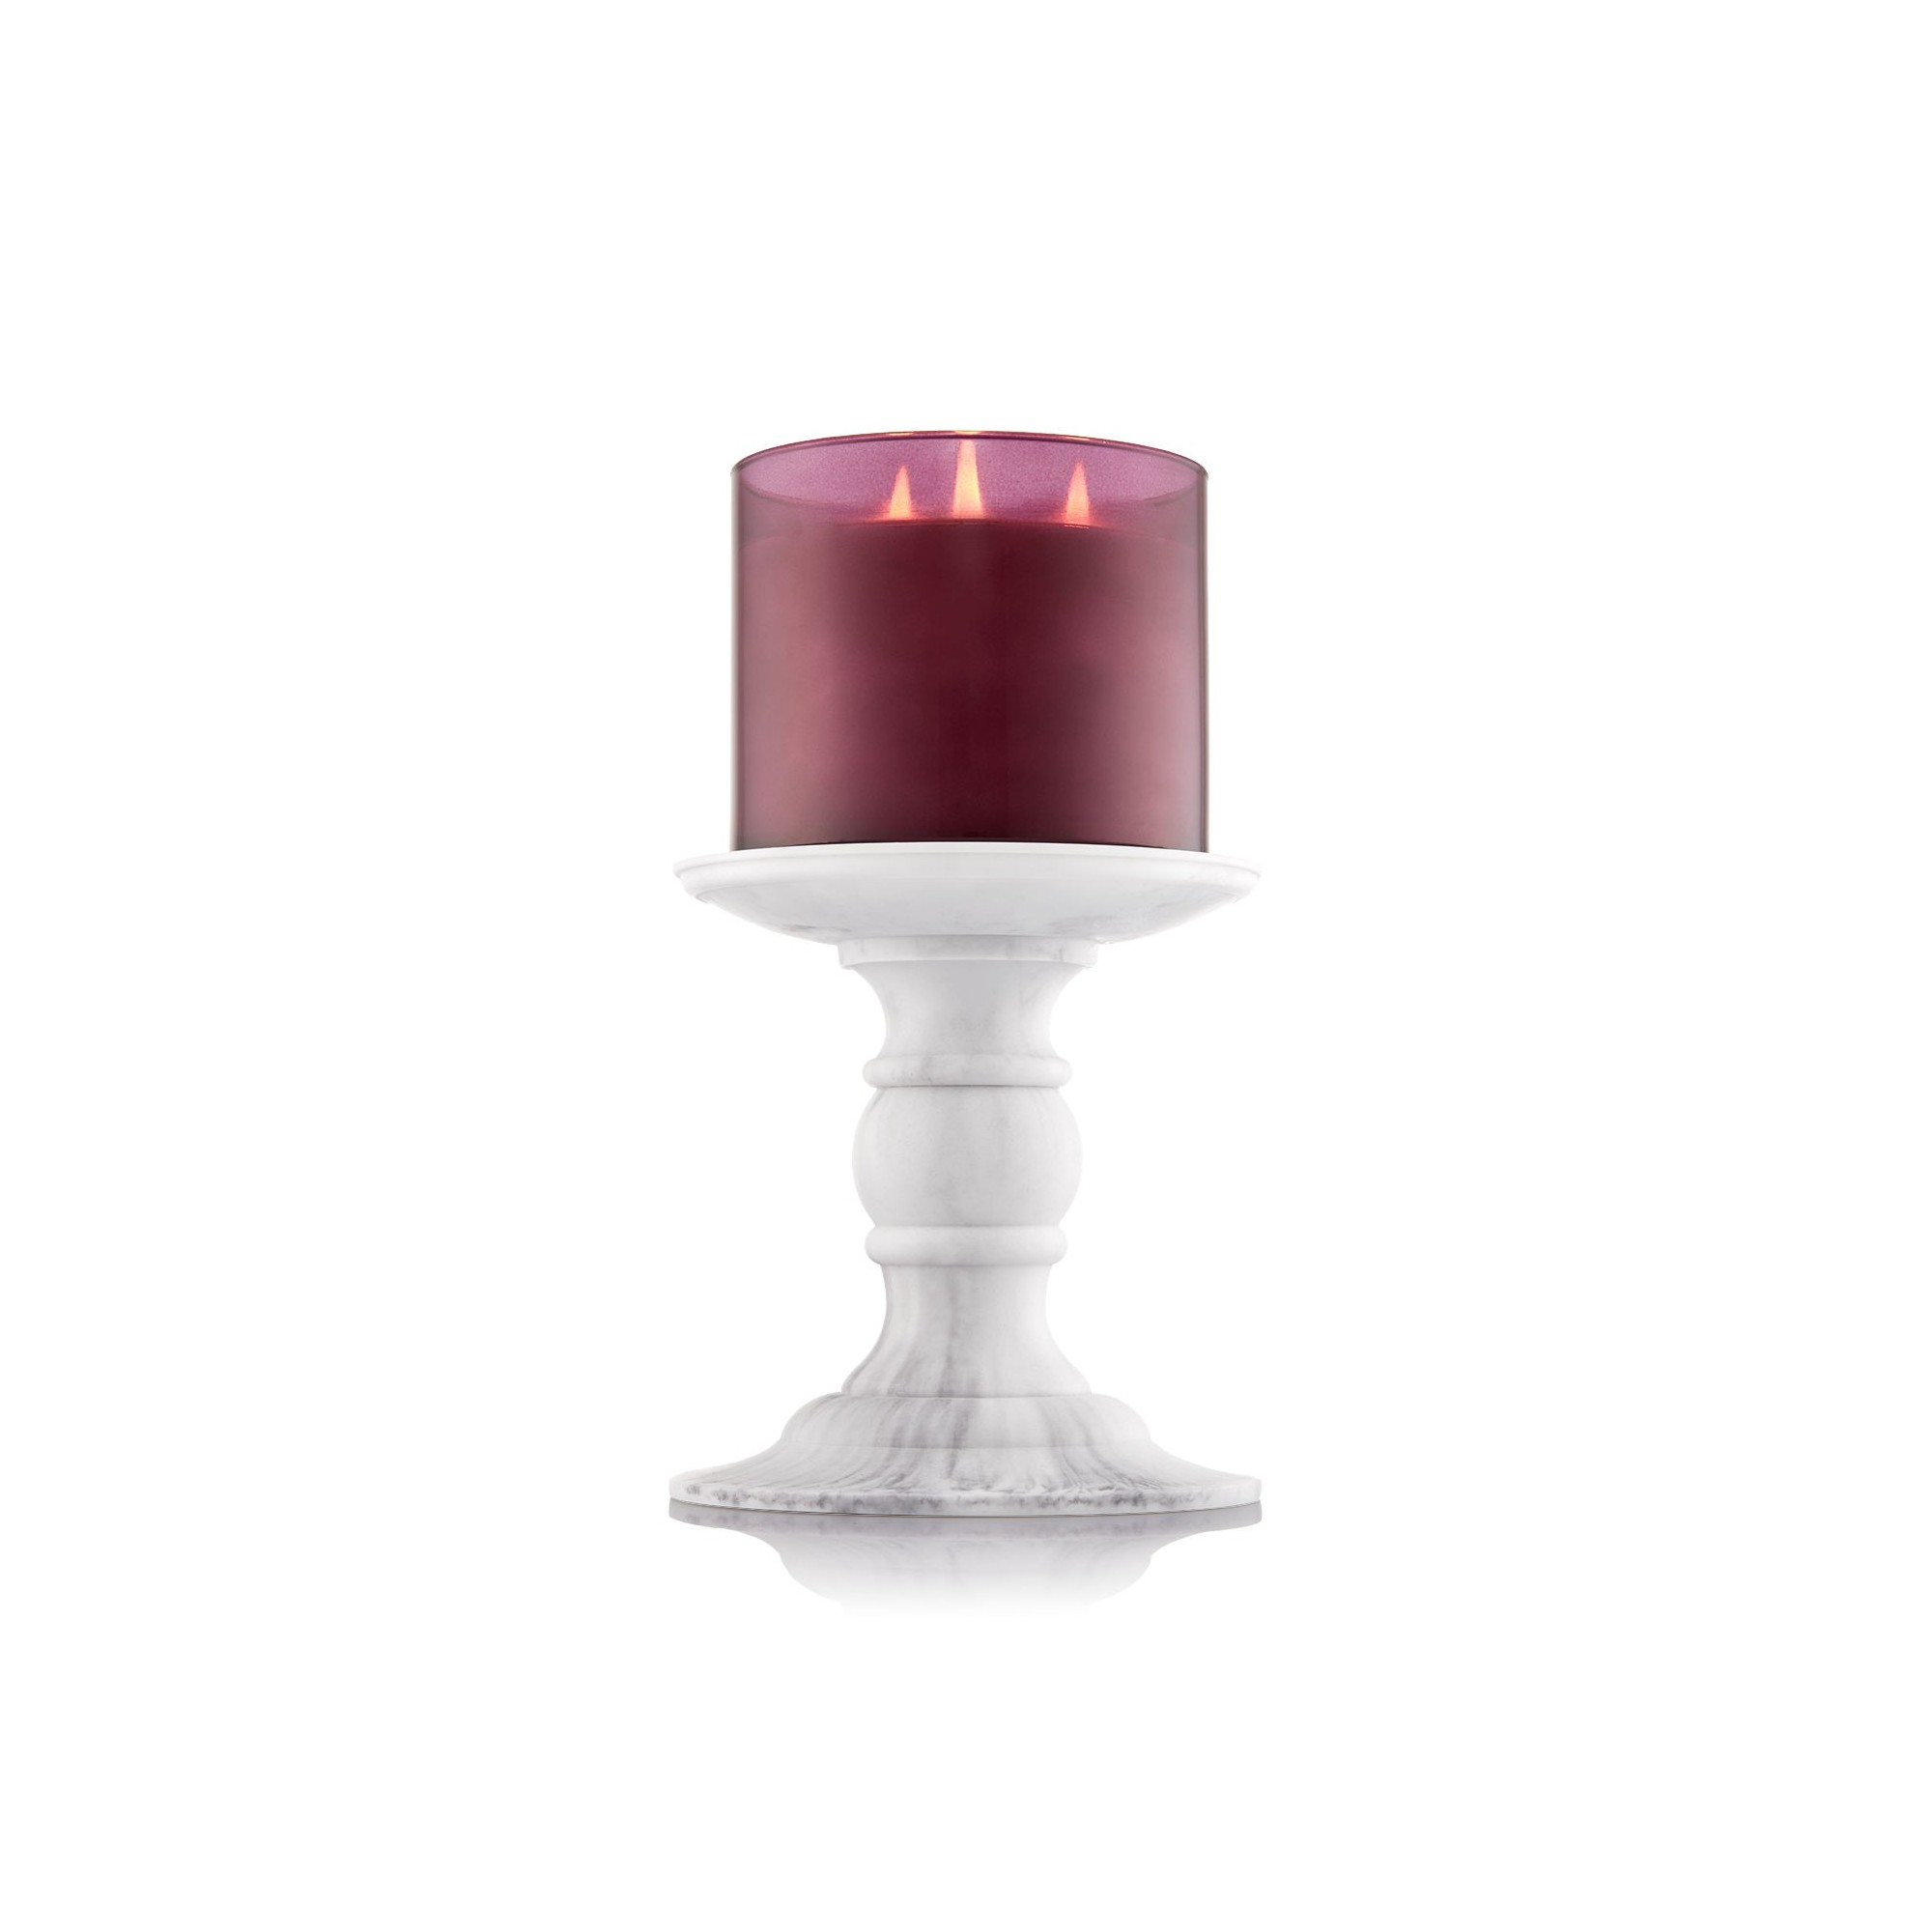 Bath & Body Works Faux Marble Pedestal Support Bougie